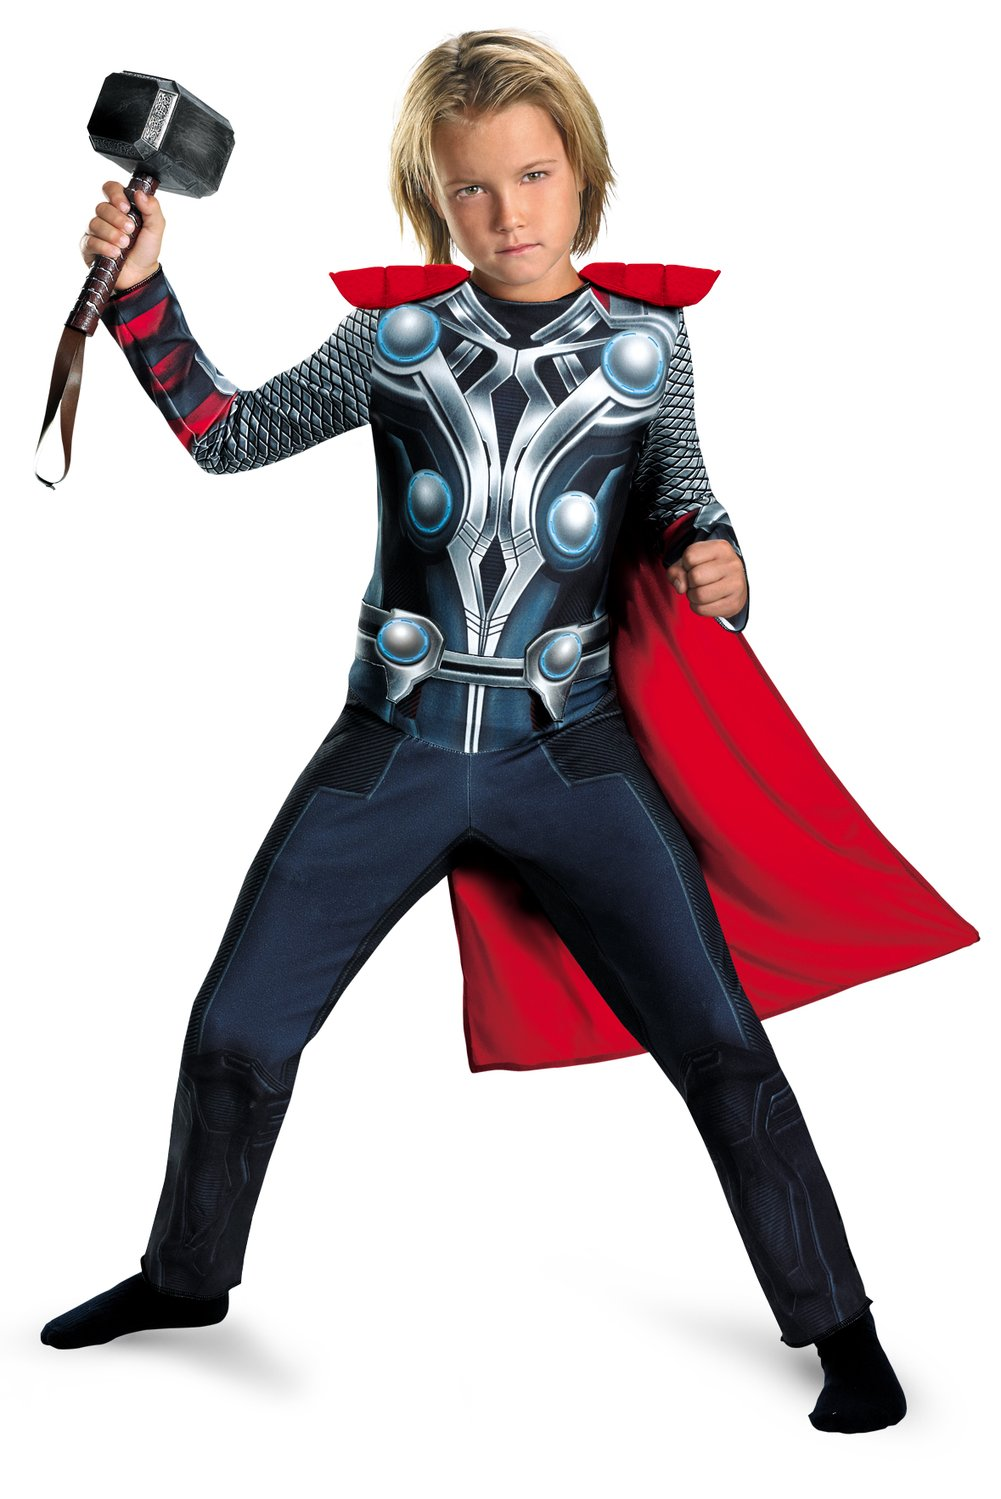 Thor Costume Ideas and Tips. This Halloween, dress up as one of the most powerful Avengers. He is even considered a god! Intimidate everyone by dressing up as Thor, and feel confident and bold as you walk around, knowing that no one will want to mess with you.